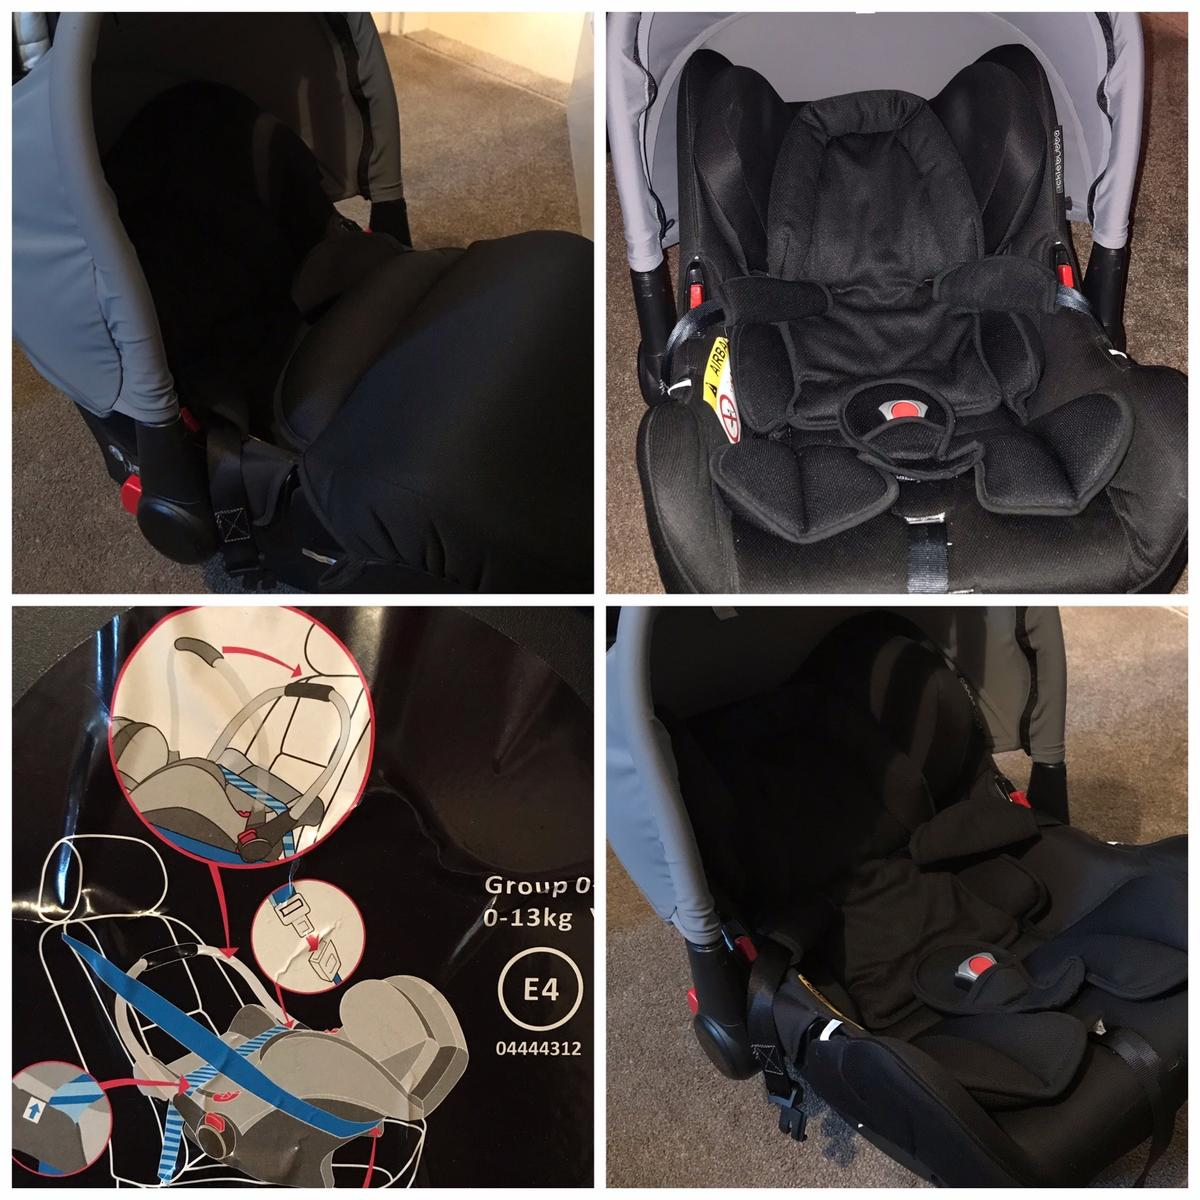 Ickle bubba stomp v3 travel system including Frame Seat Carrycot Car seat (never been in a crash) Isofix base Rain cover Changing bag Footmuffs and carrycot cover Car seat adaptars and instruction books. It's in good condition, only used for a year, few scratches on the frame and a small mark on the car seat under the cushion. No time waisters, first to collect will get the travel system. Collection only from burslem Cash only